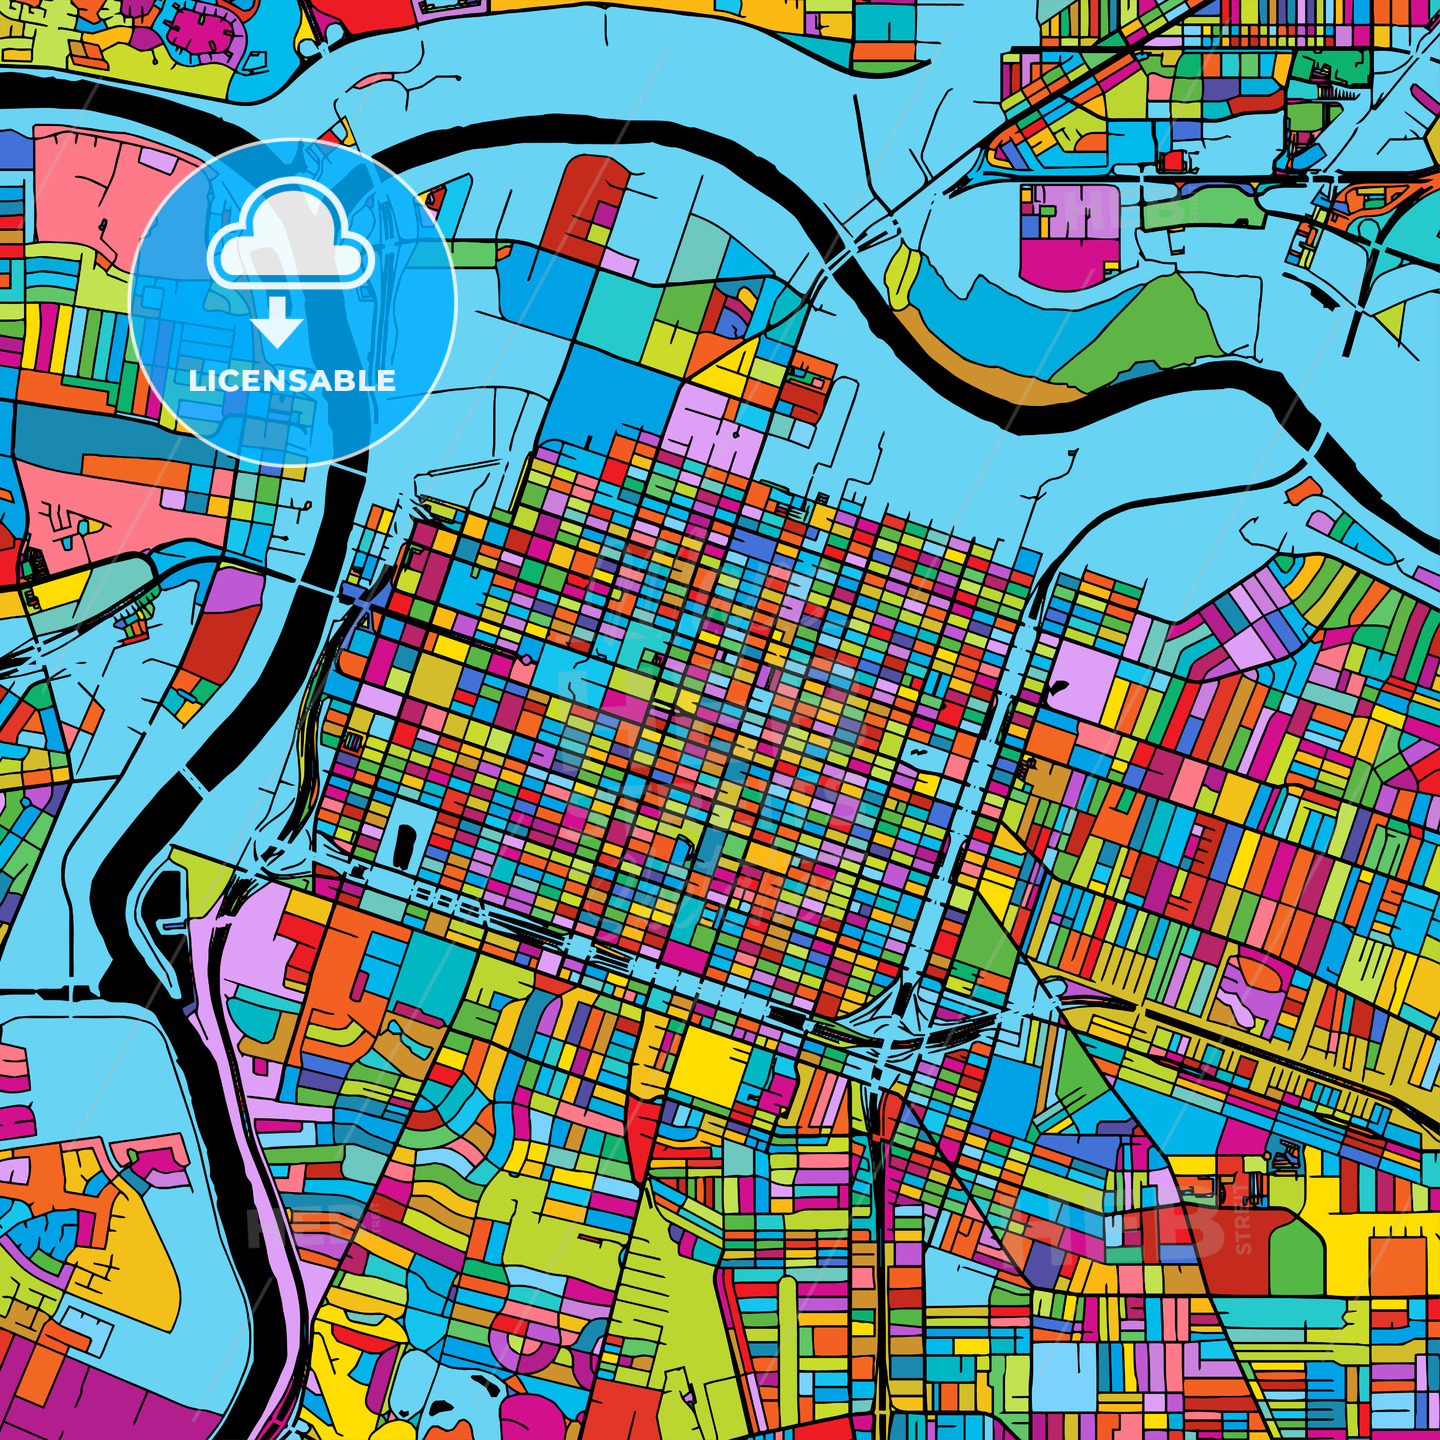 Sacramento, California, Colorful Vector Map on Black - HEBSTREIT's Sketches